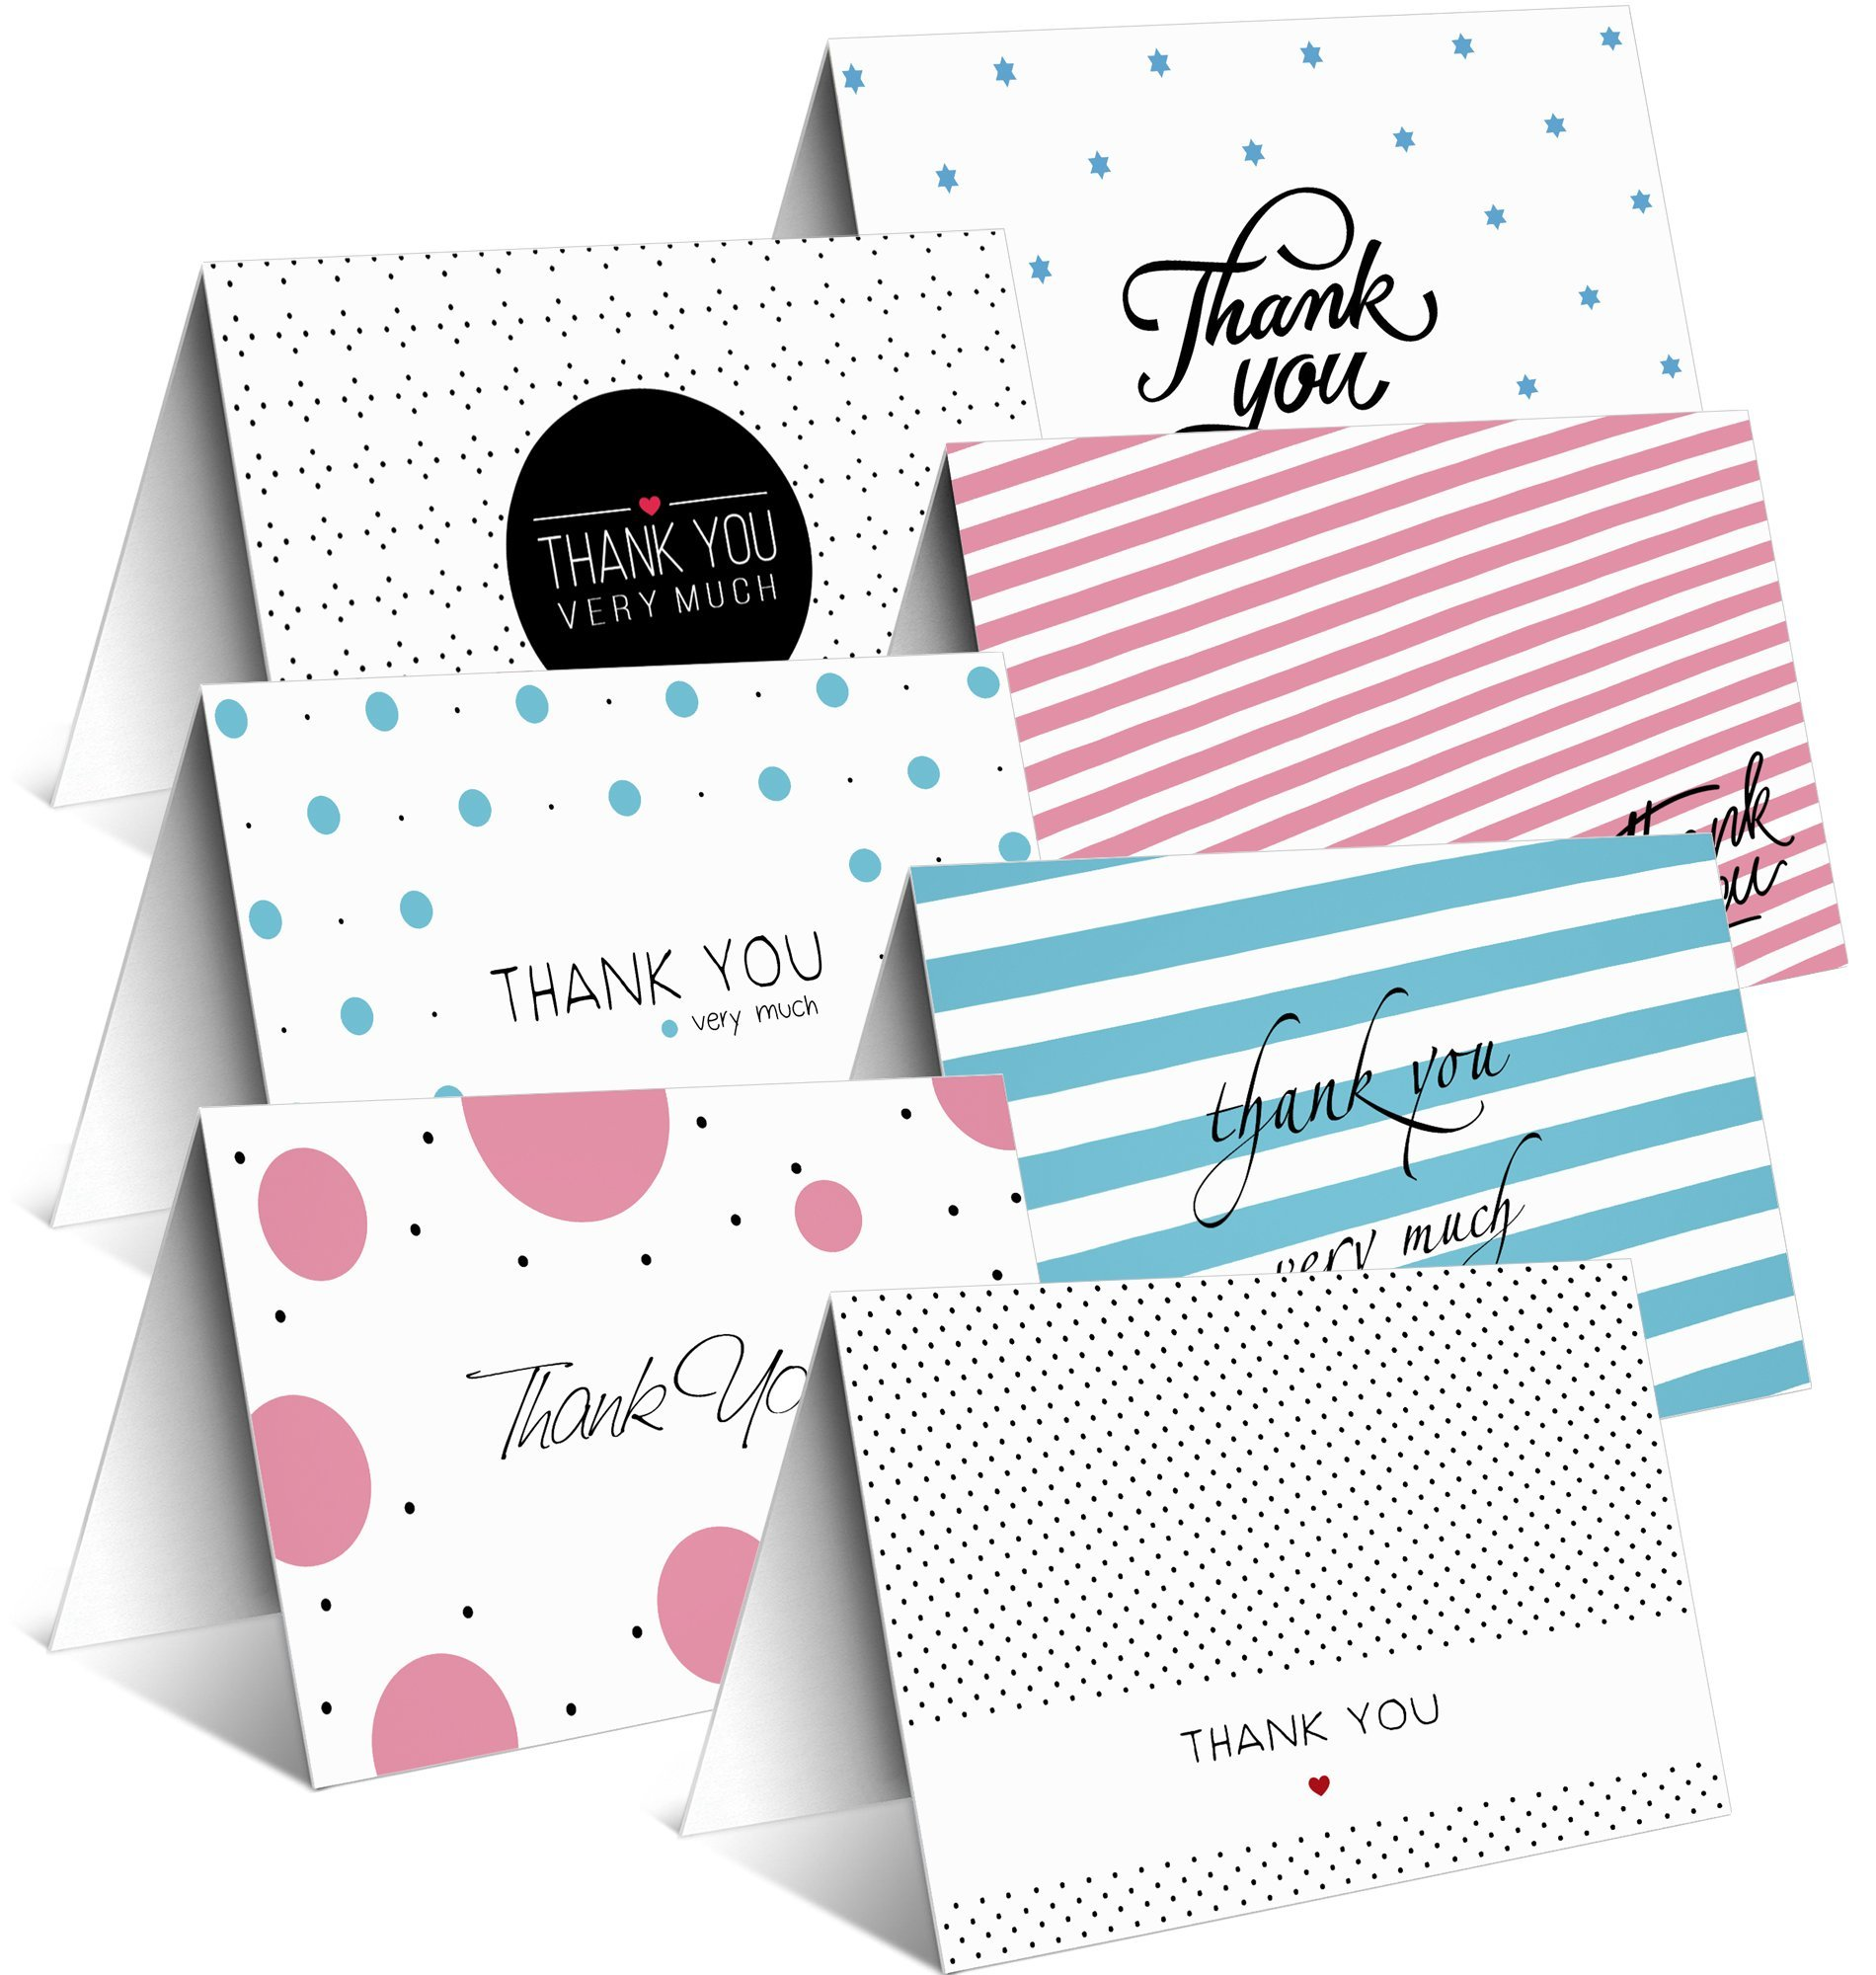 42 Assorted Thank You Cards Bulk Box by Toplex - Perfect for Wedding, Baby Shower, Bridal, Anniversary, Engagement and Business - 7 Classic Designs - Blank Inside - White Envelopes Included